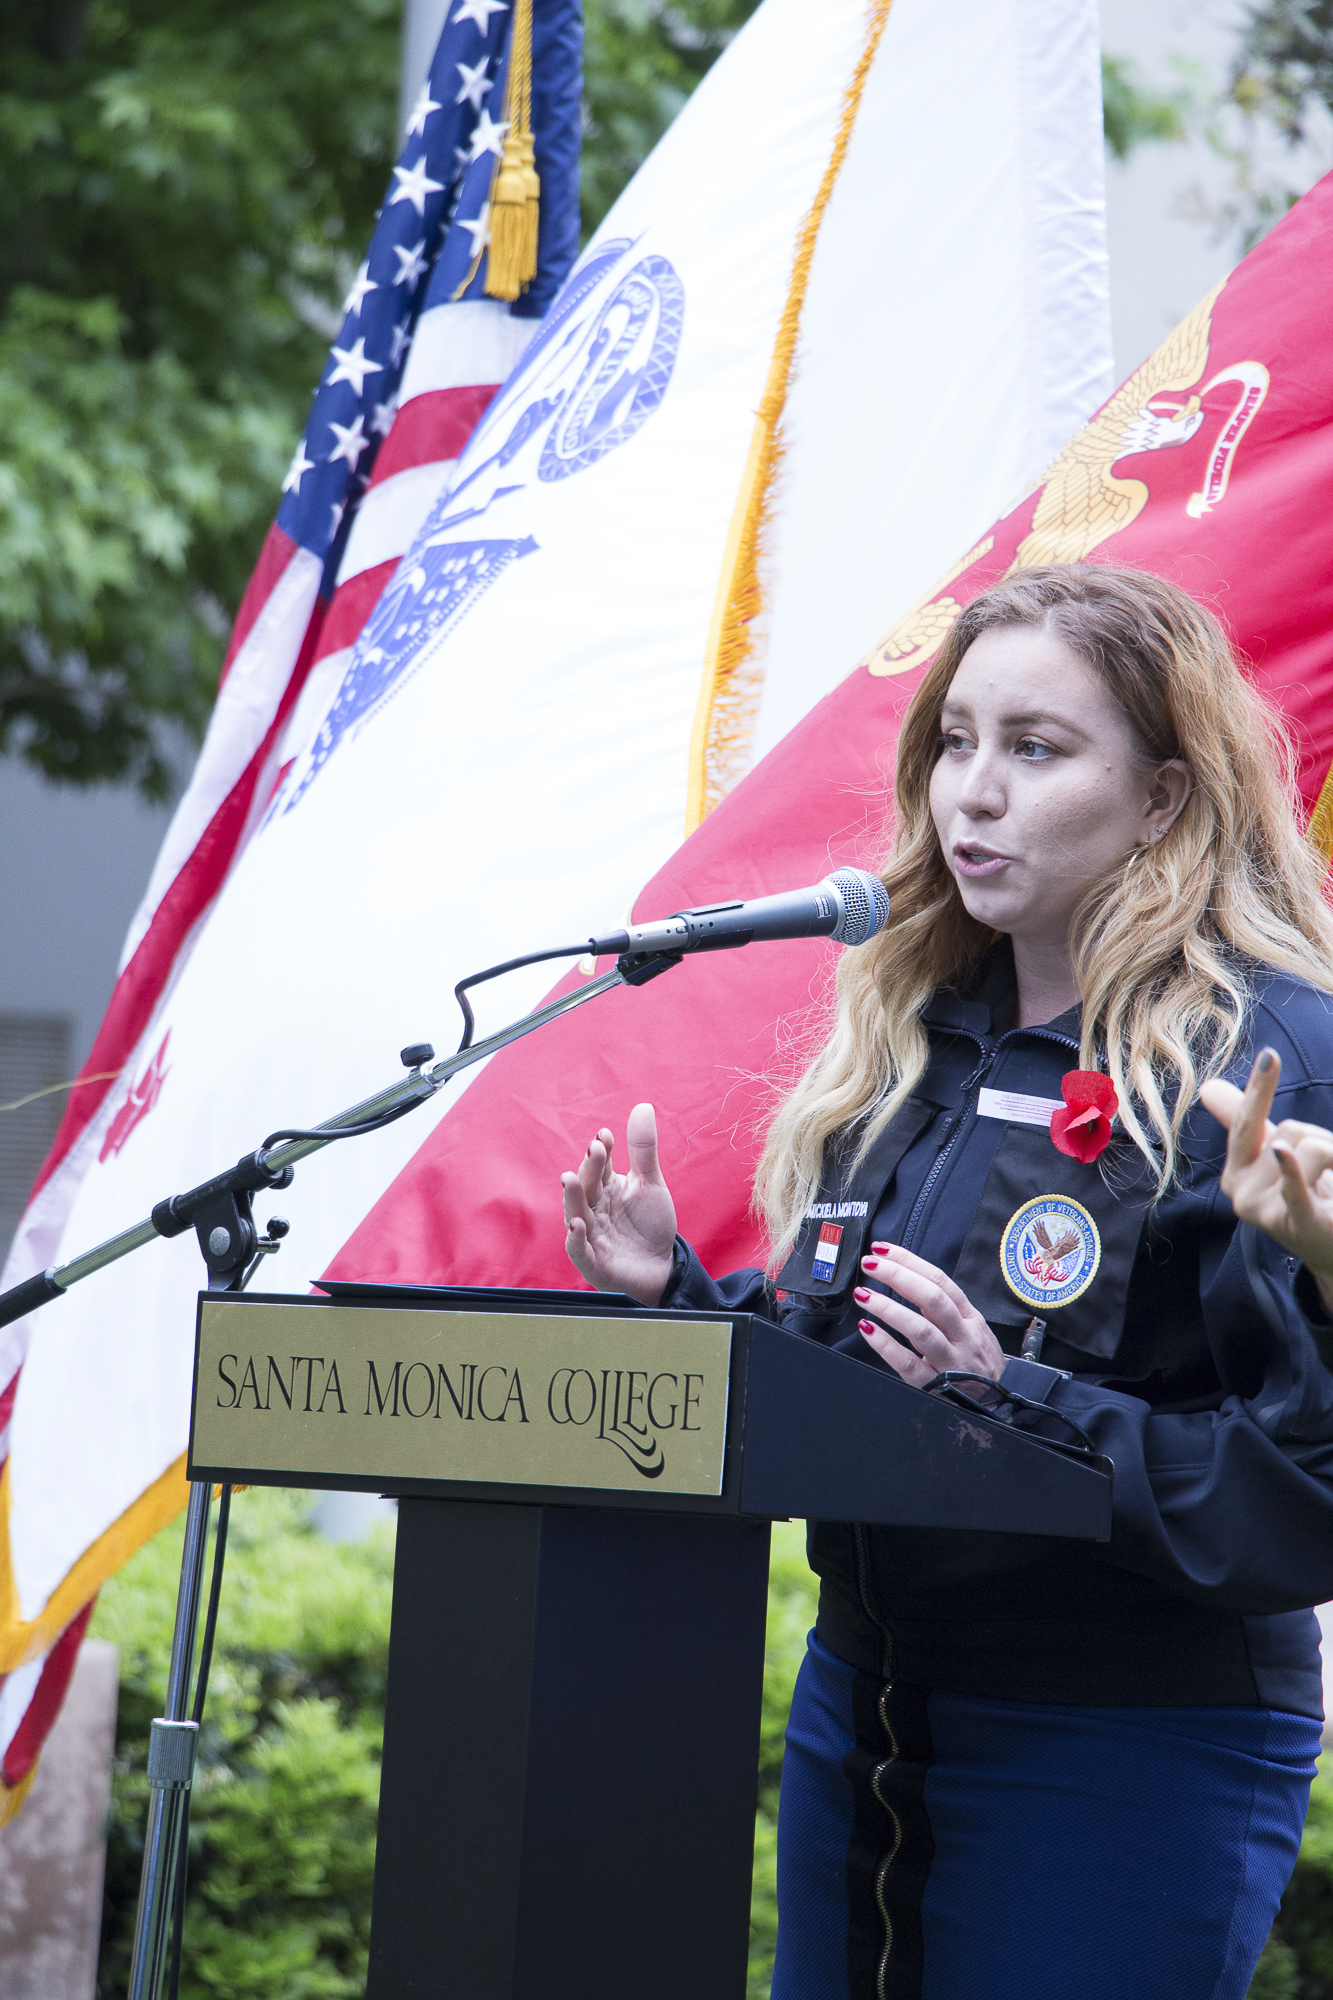 Mickiela Montoya, a veteran spoke about her time in the National Guard in Iraq during the Memorial Day Commemoration in Santa Monica College on Thursday May 24, 2018 in Santa Monica, California. (Wilson Gomez/Corsair Photo)